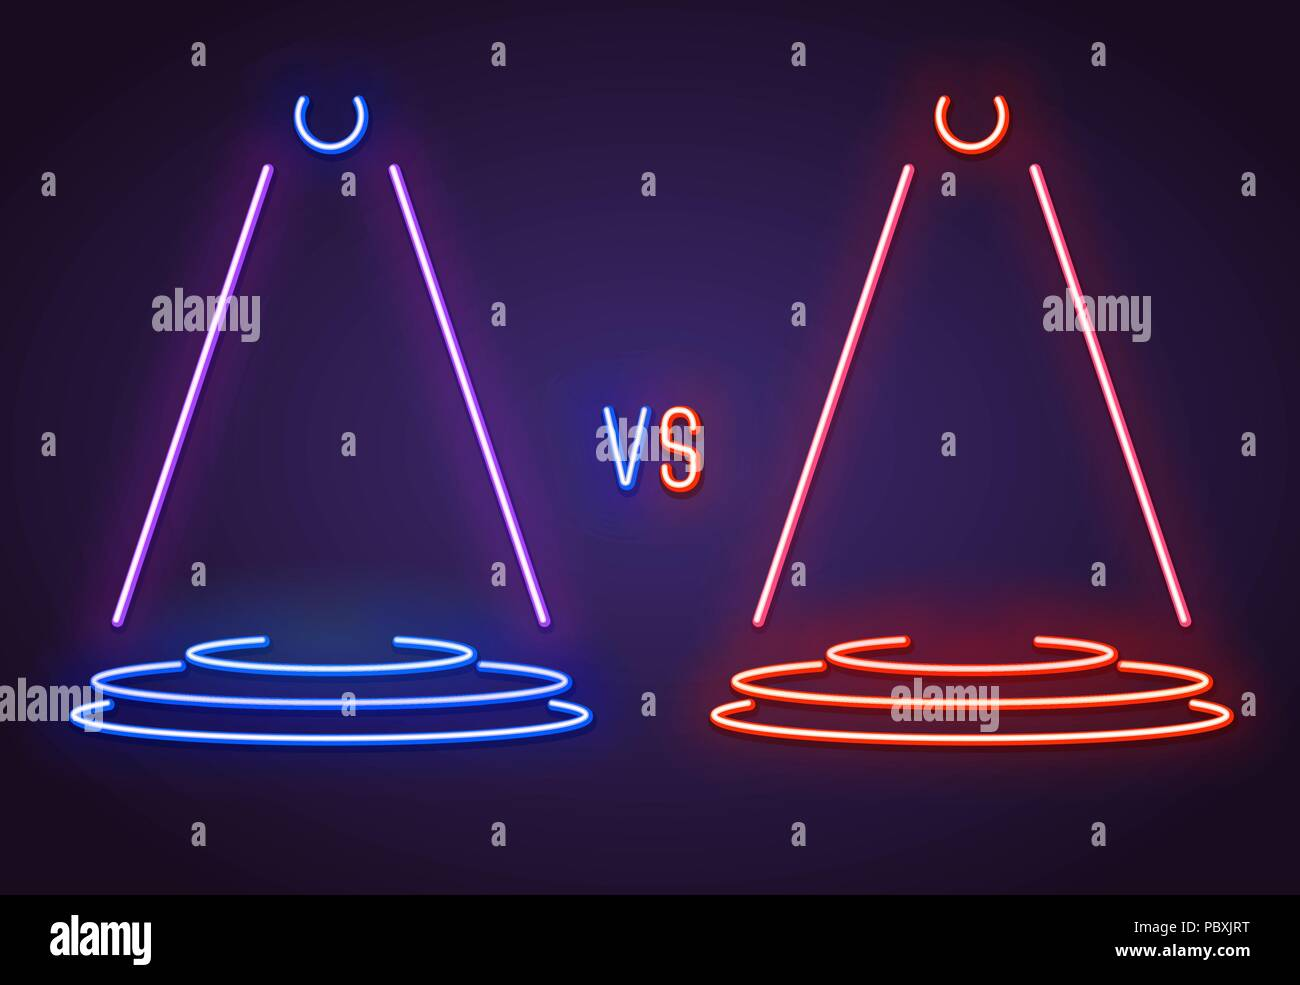 Versus neon sign - Stock Vector